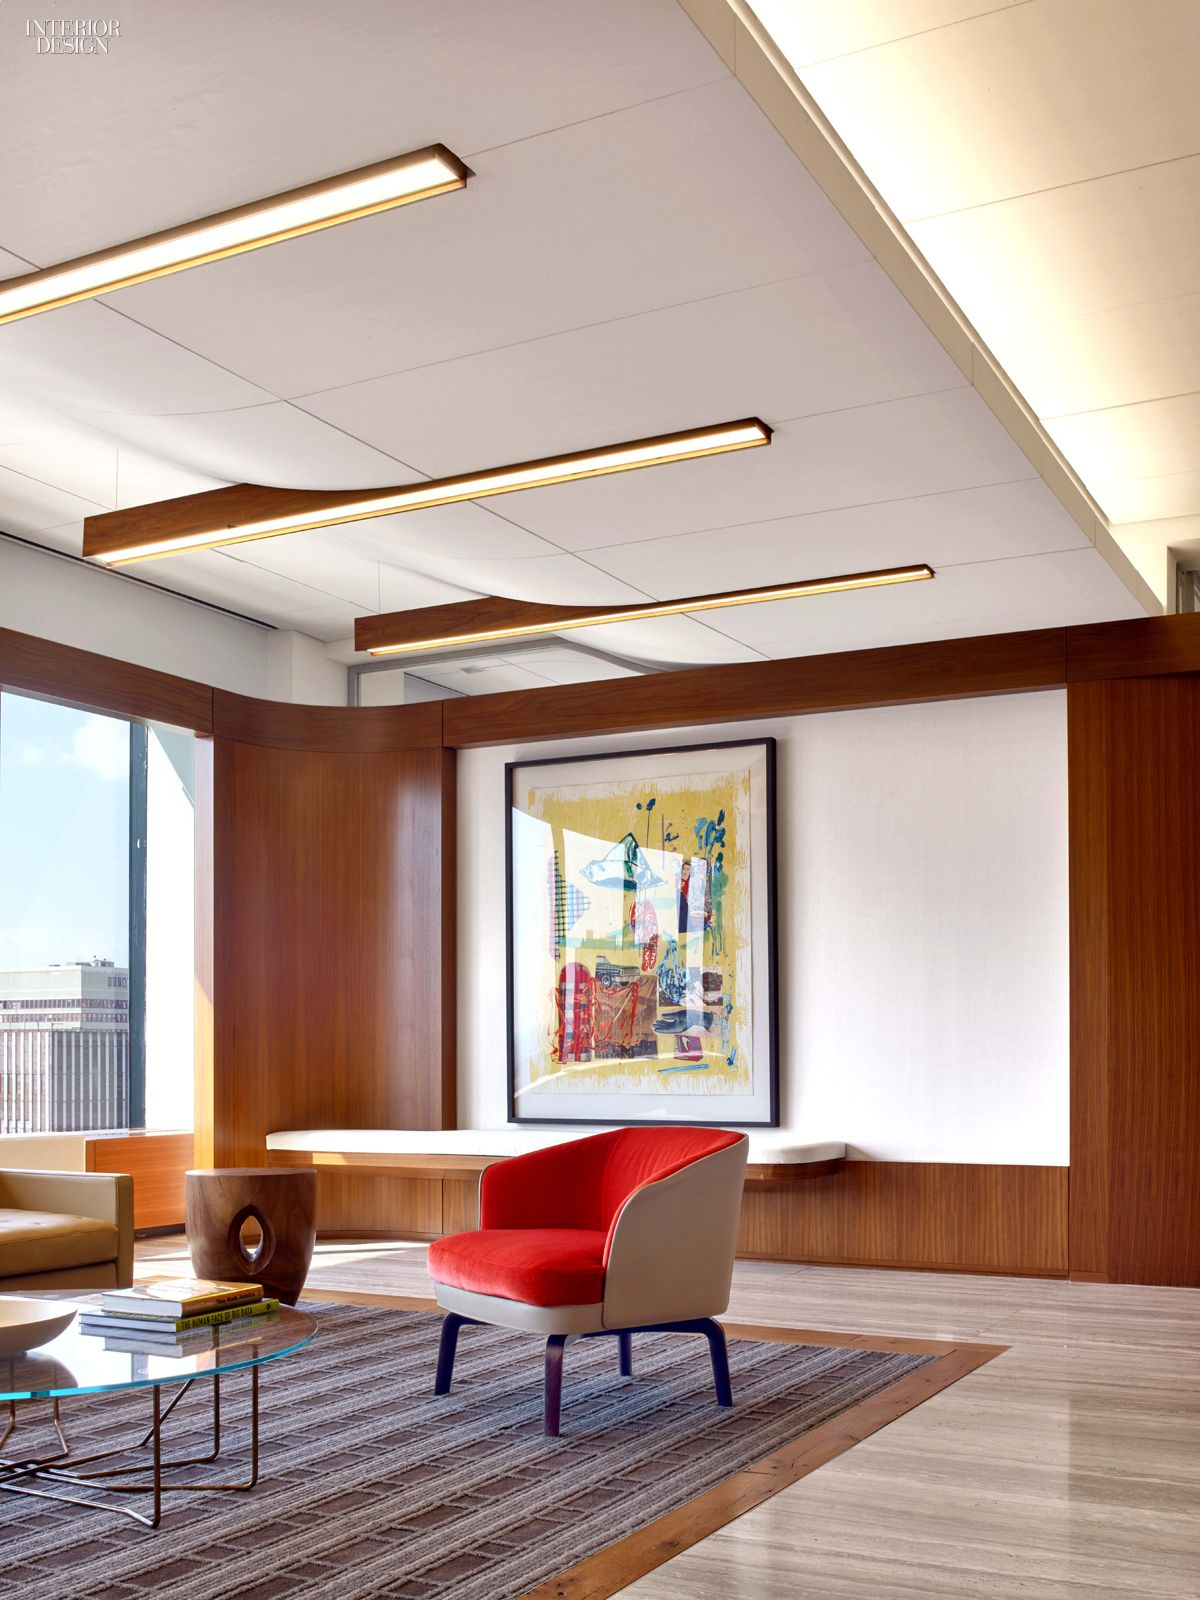 Midtown Architecture Inspires SmithMaran for Insight ...